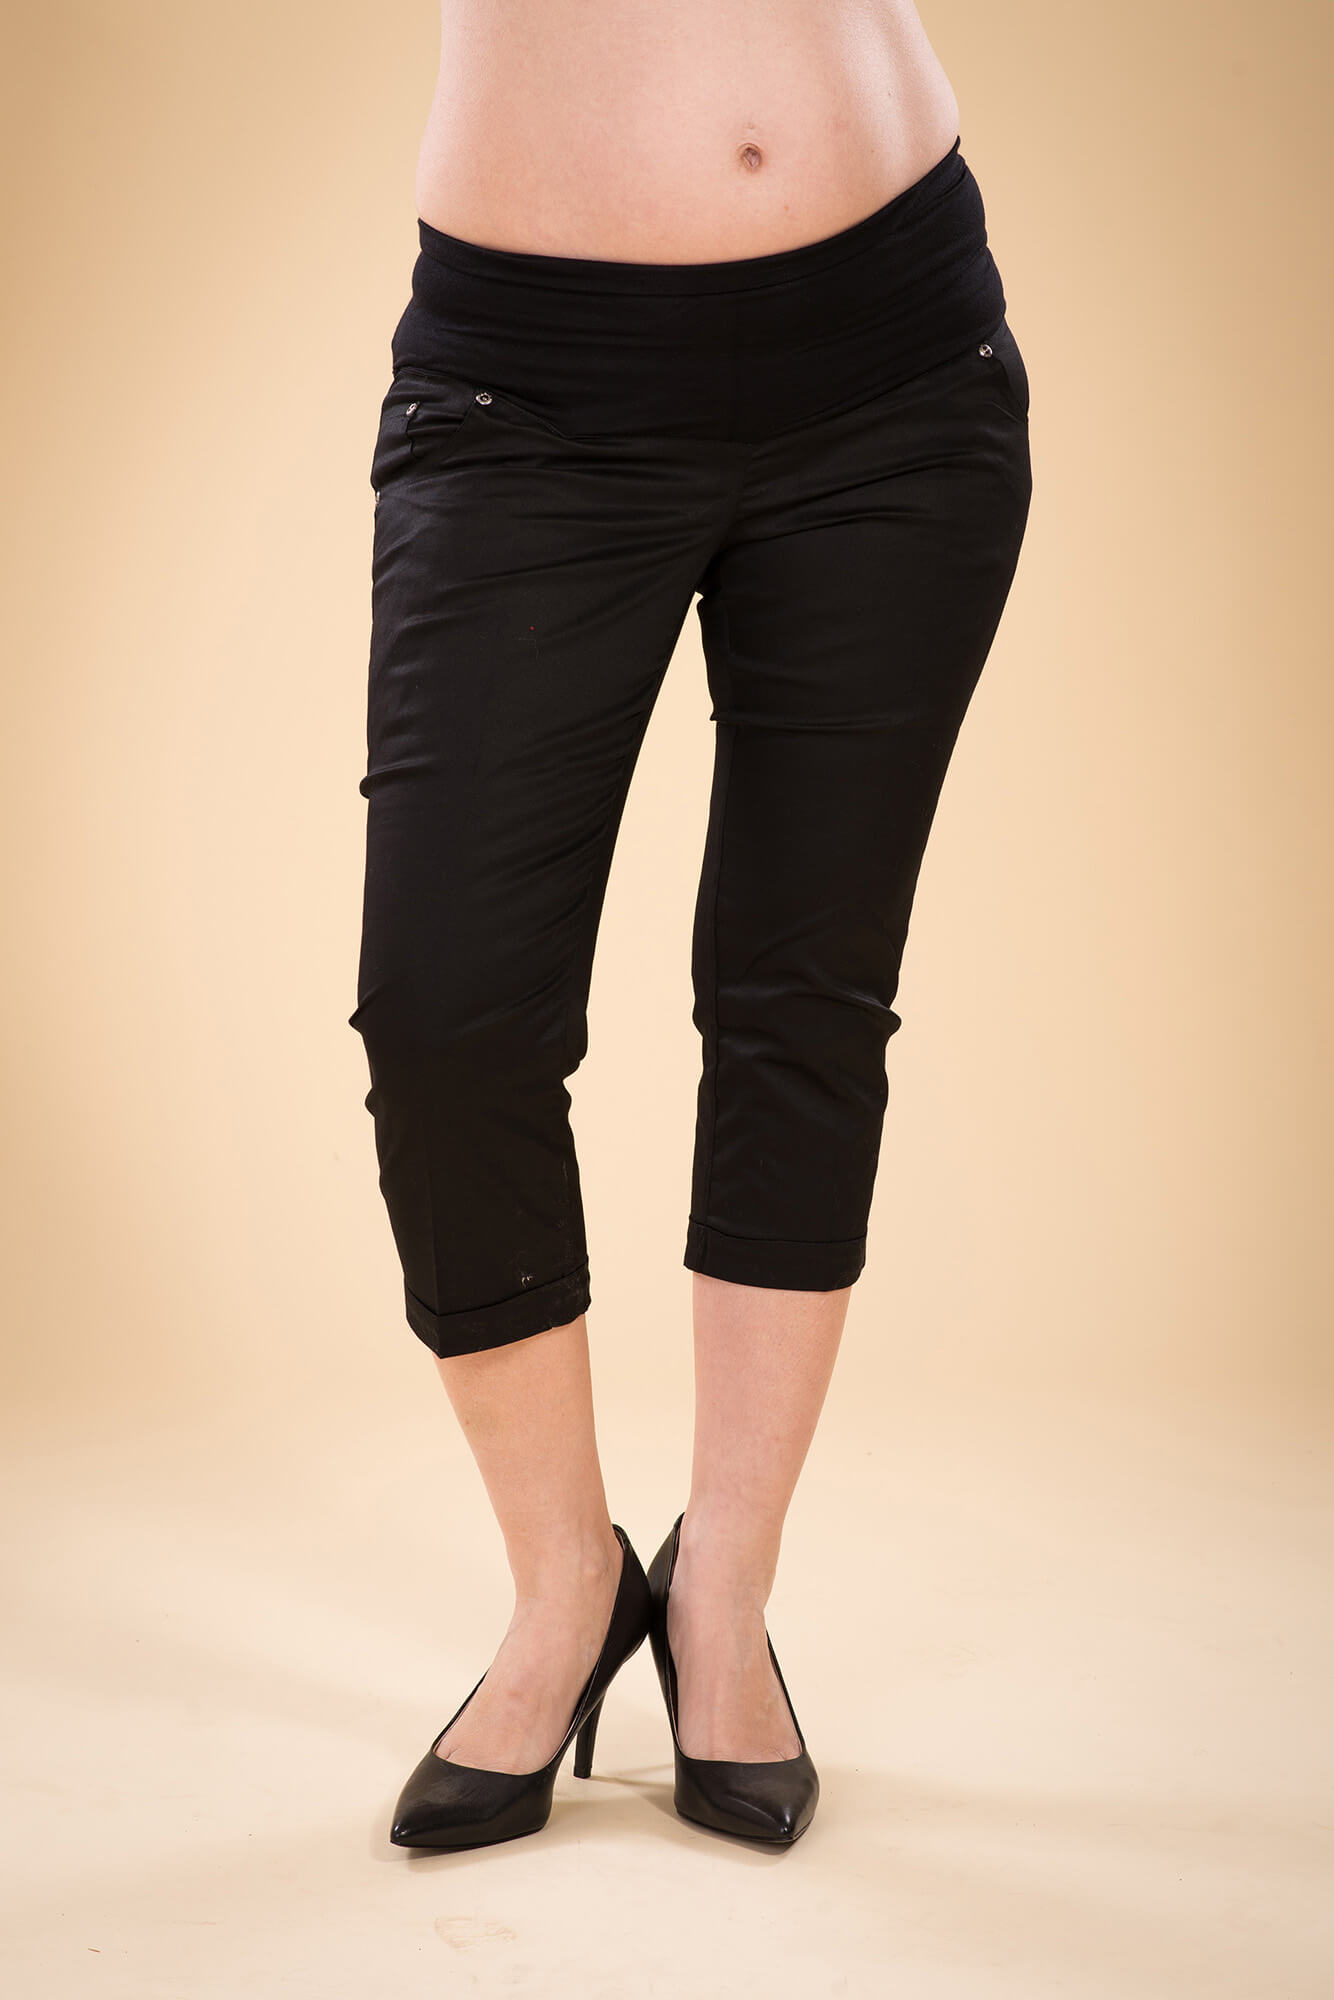 Maternity Pants – Seven Eighths